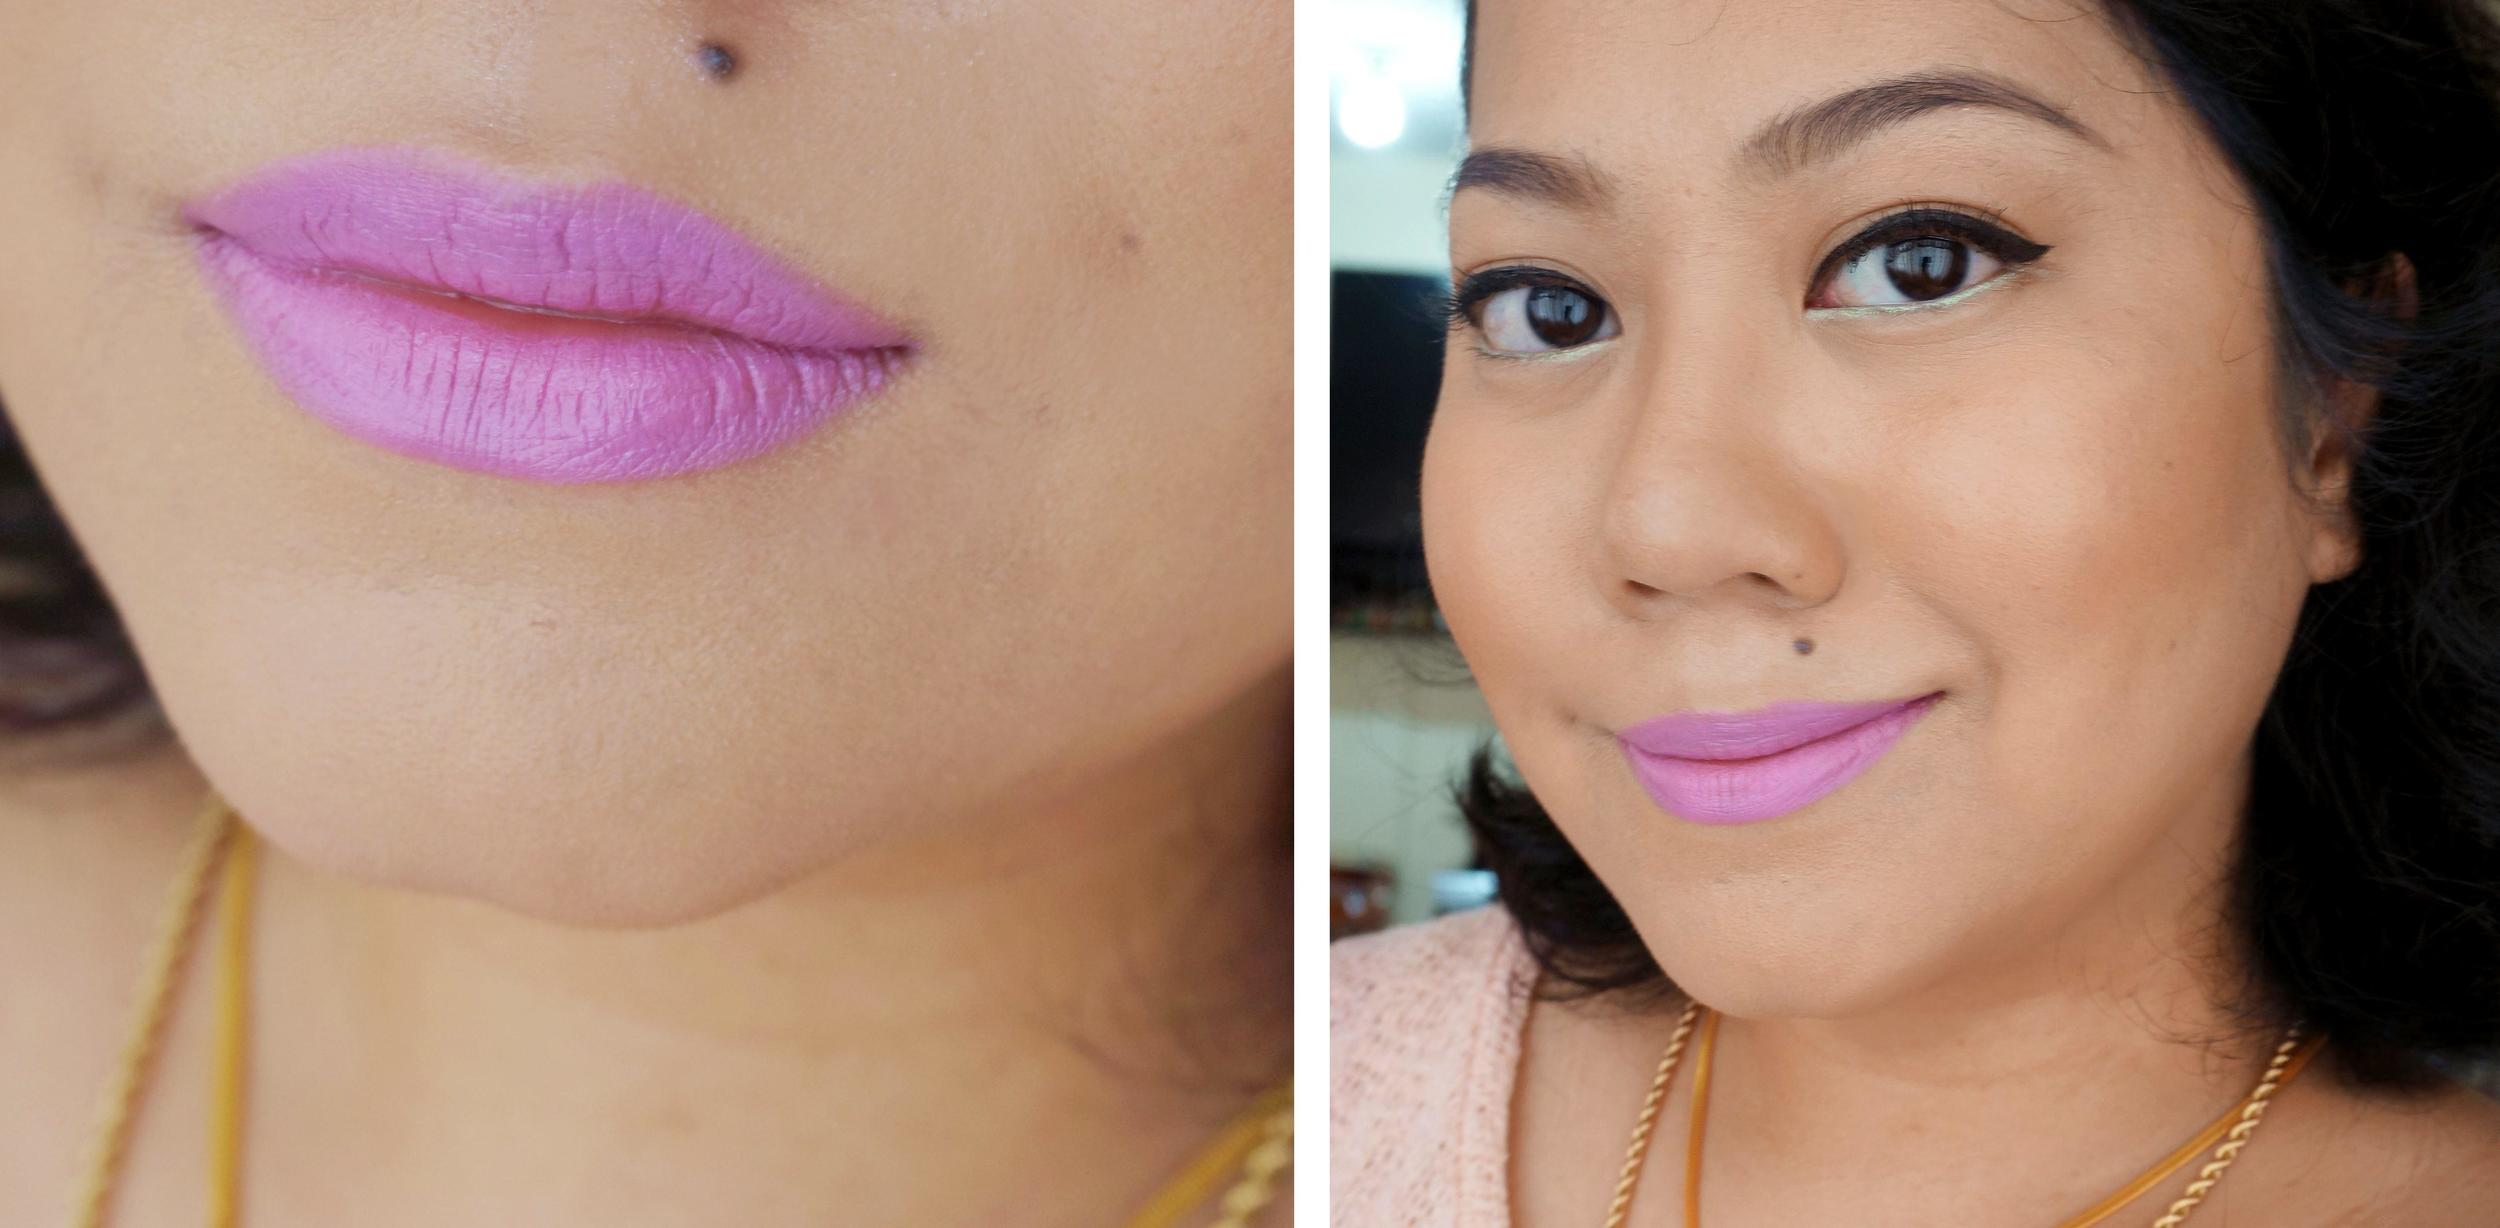 A lip + face swatch of Dodgy Girl. It's a fun color but definitely not a daily shade for me!